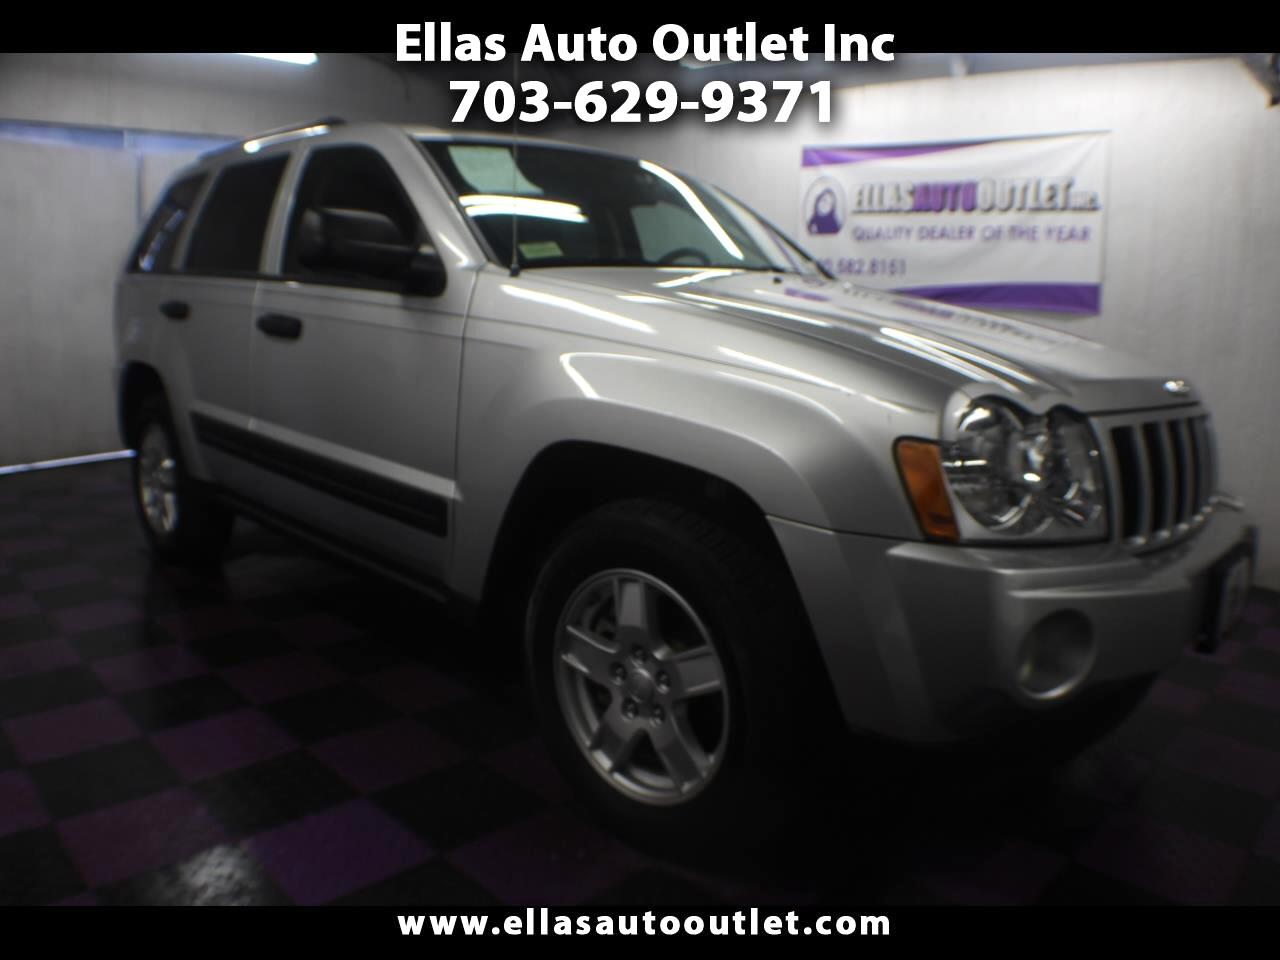 2005 Jeep Grand Cherokee ROCKY MOUNT EDITION 4WD